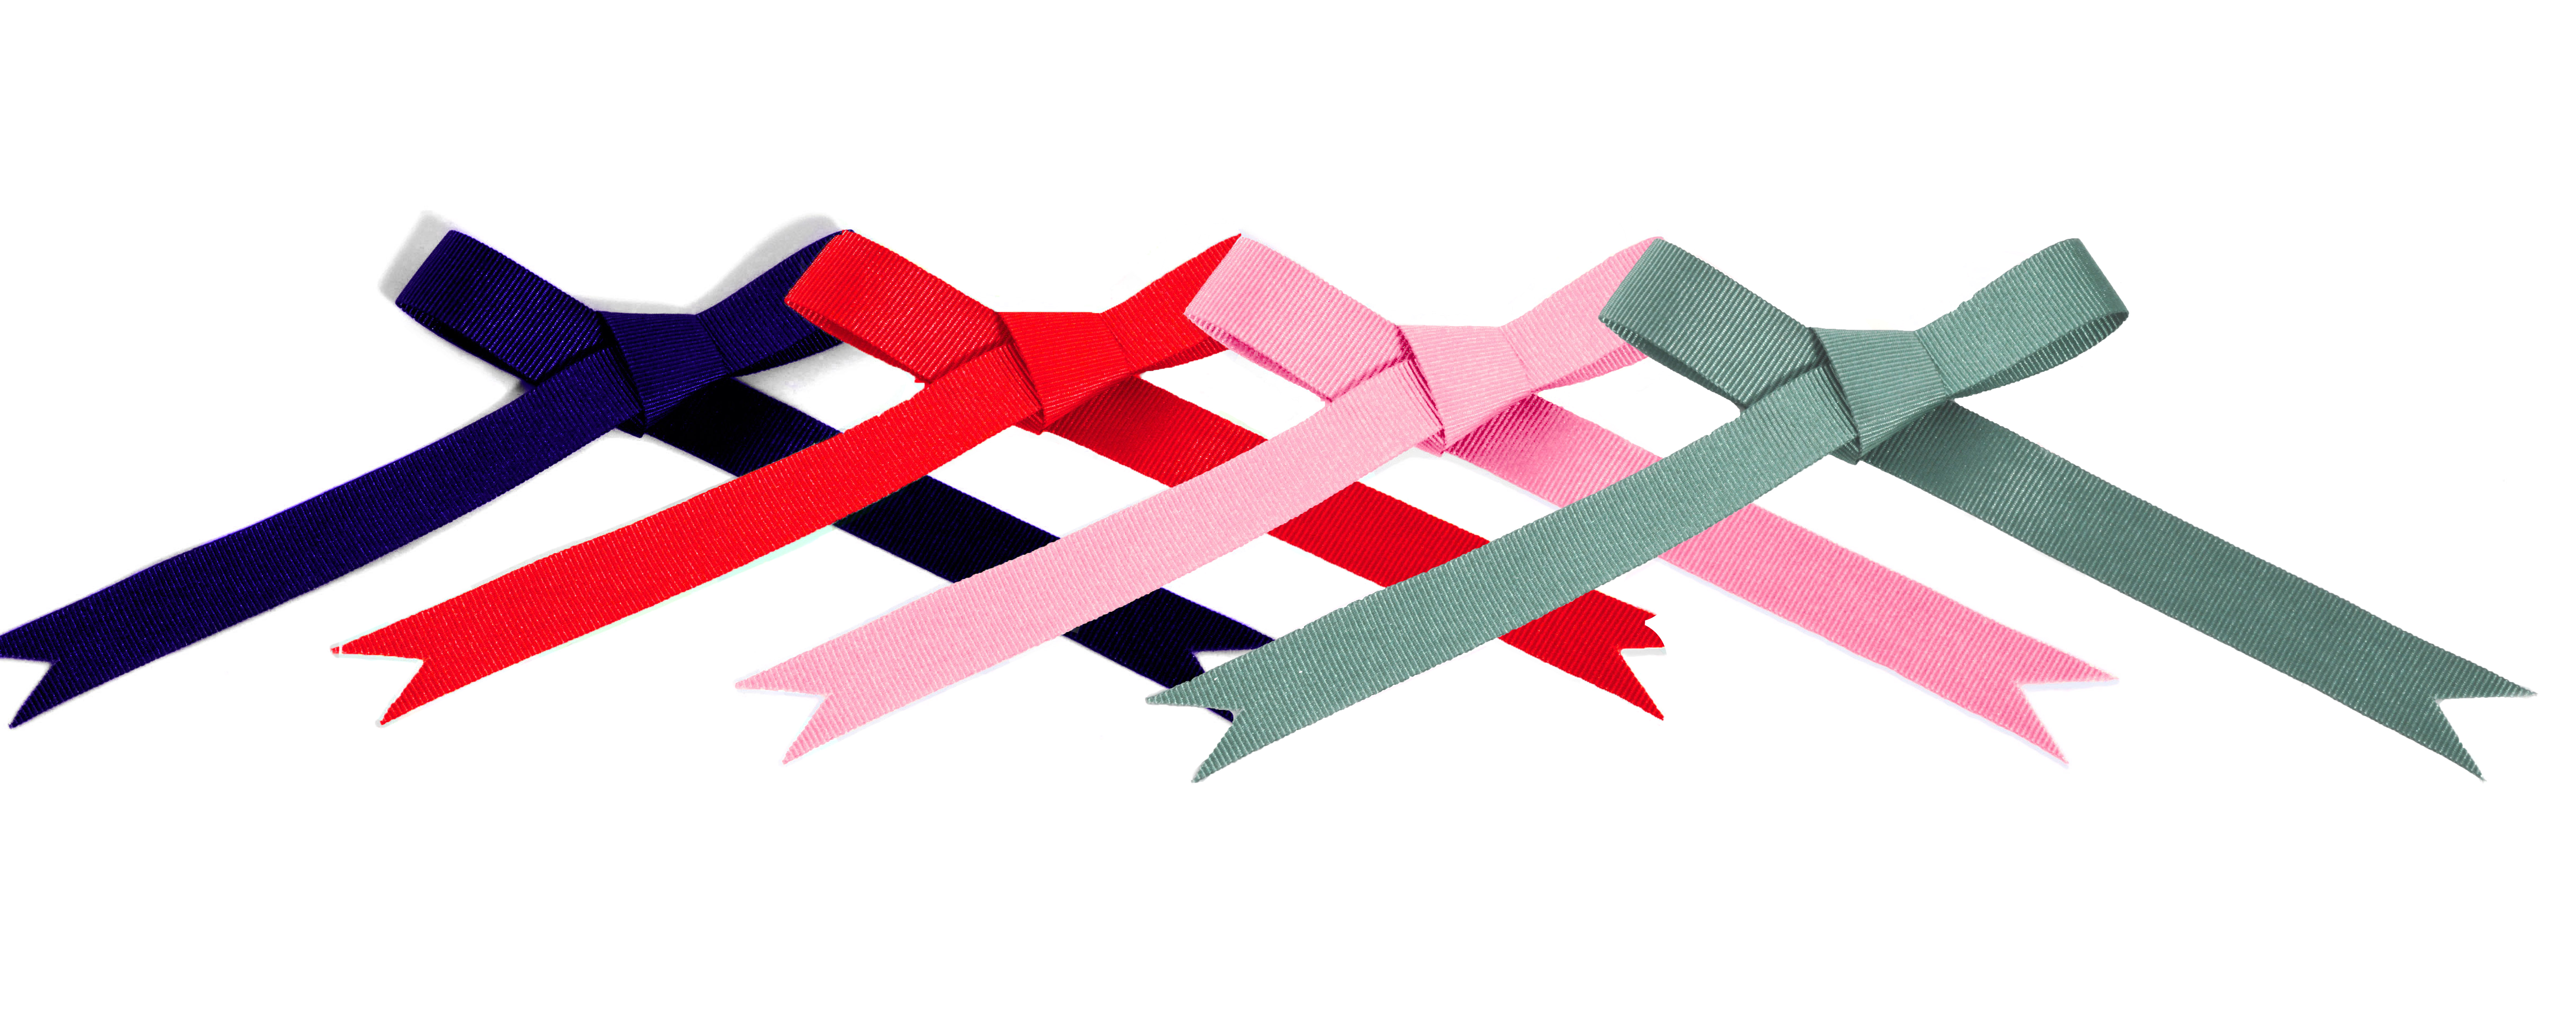 5 Great Uses for Your Personalised Ribbon